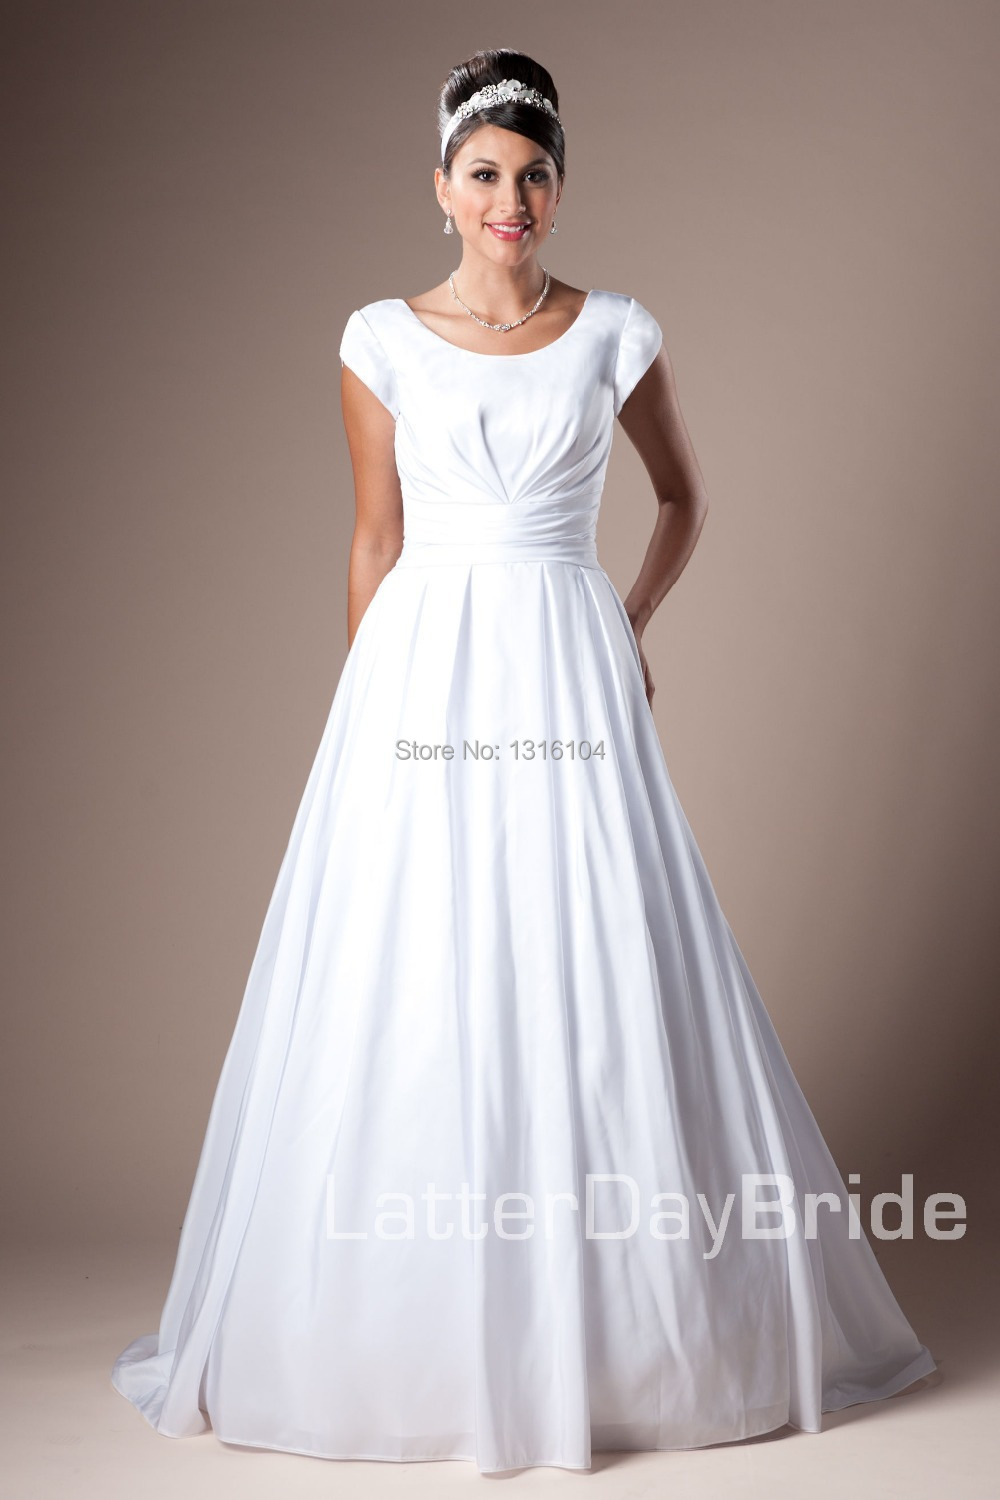 Simple Modest Wedding Dress - Wedding Dress Ideas